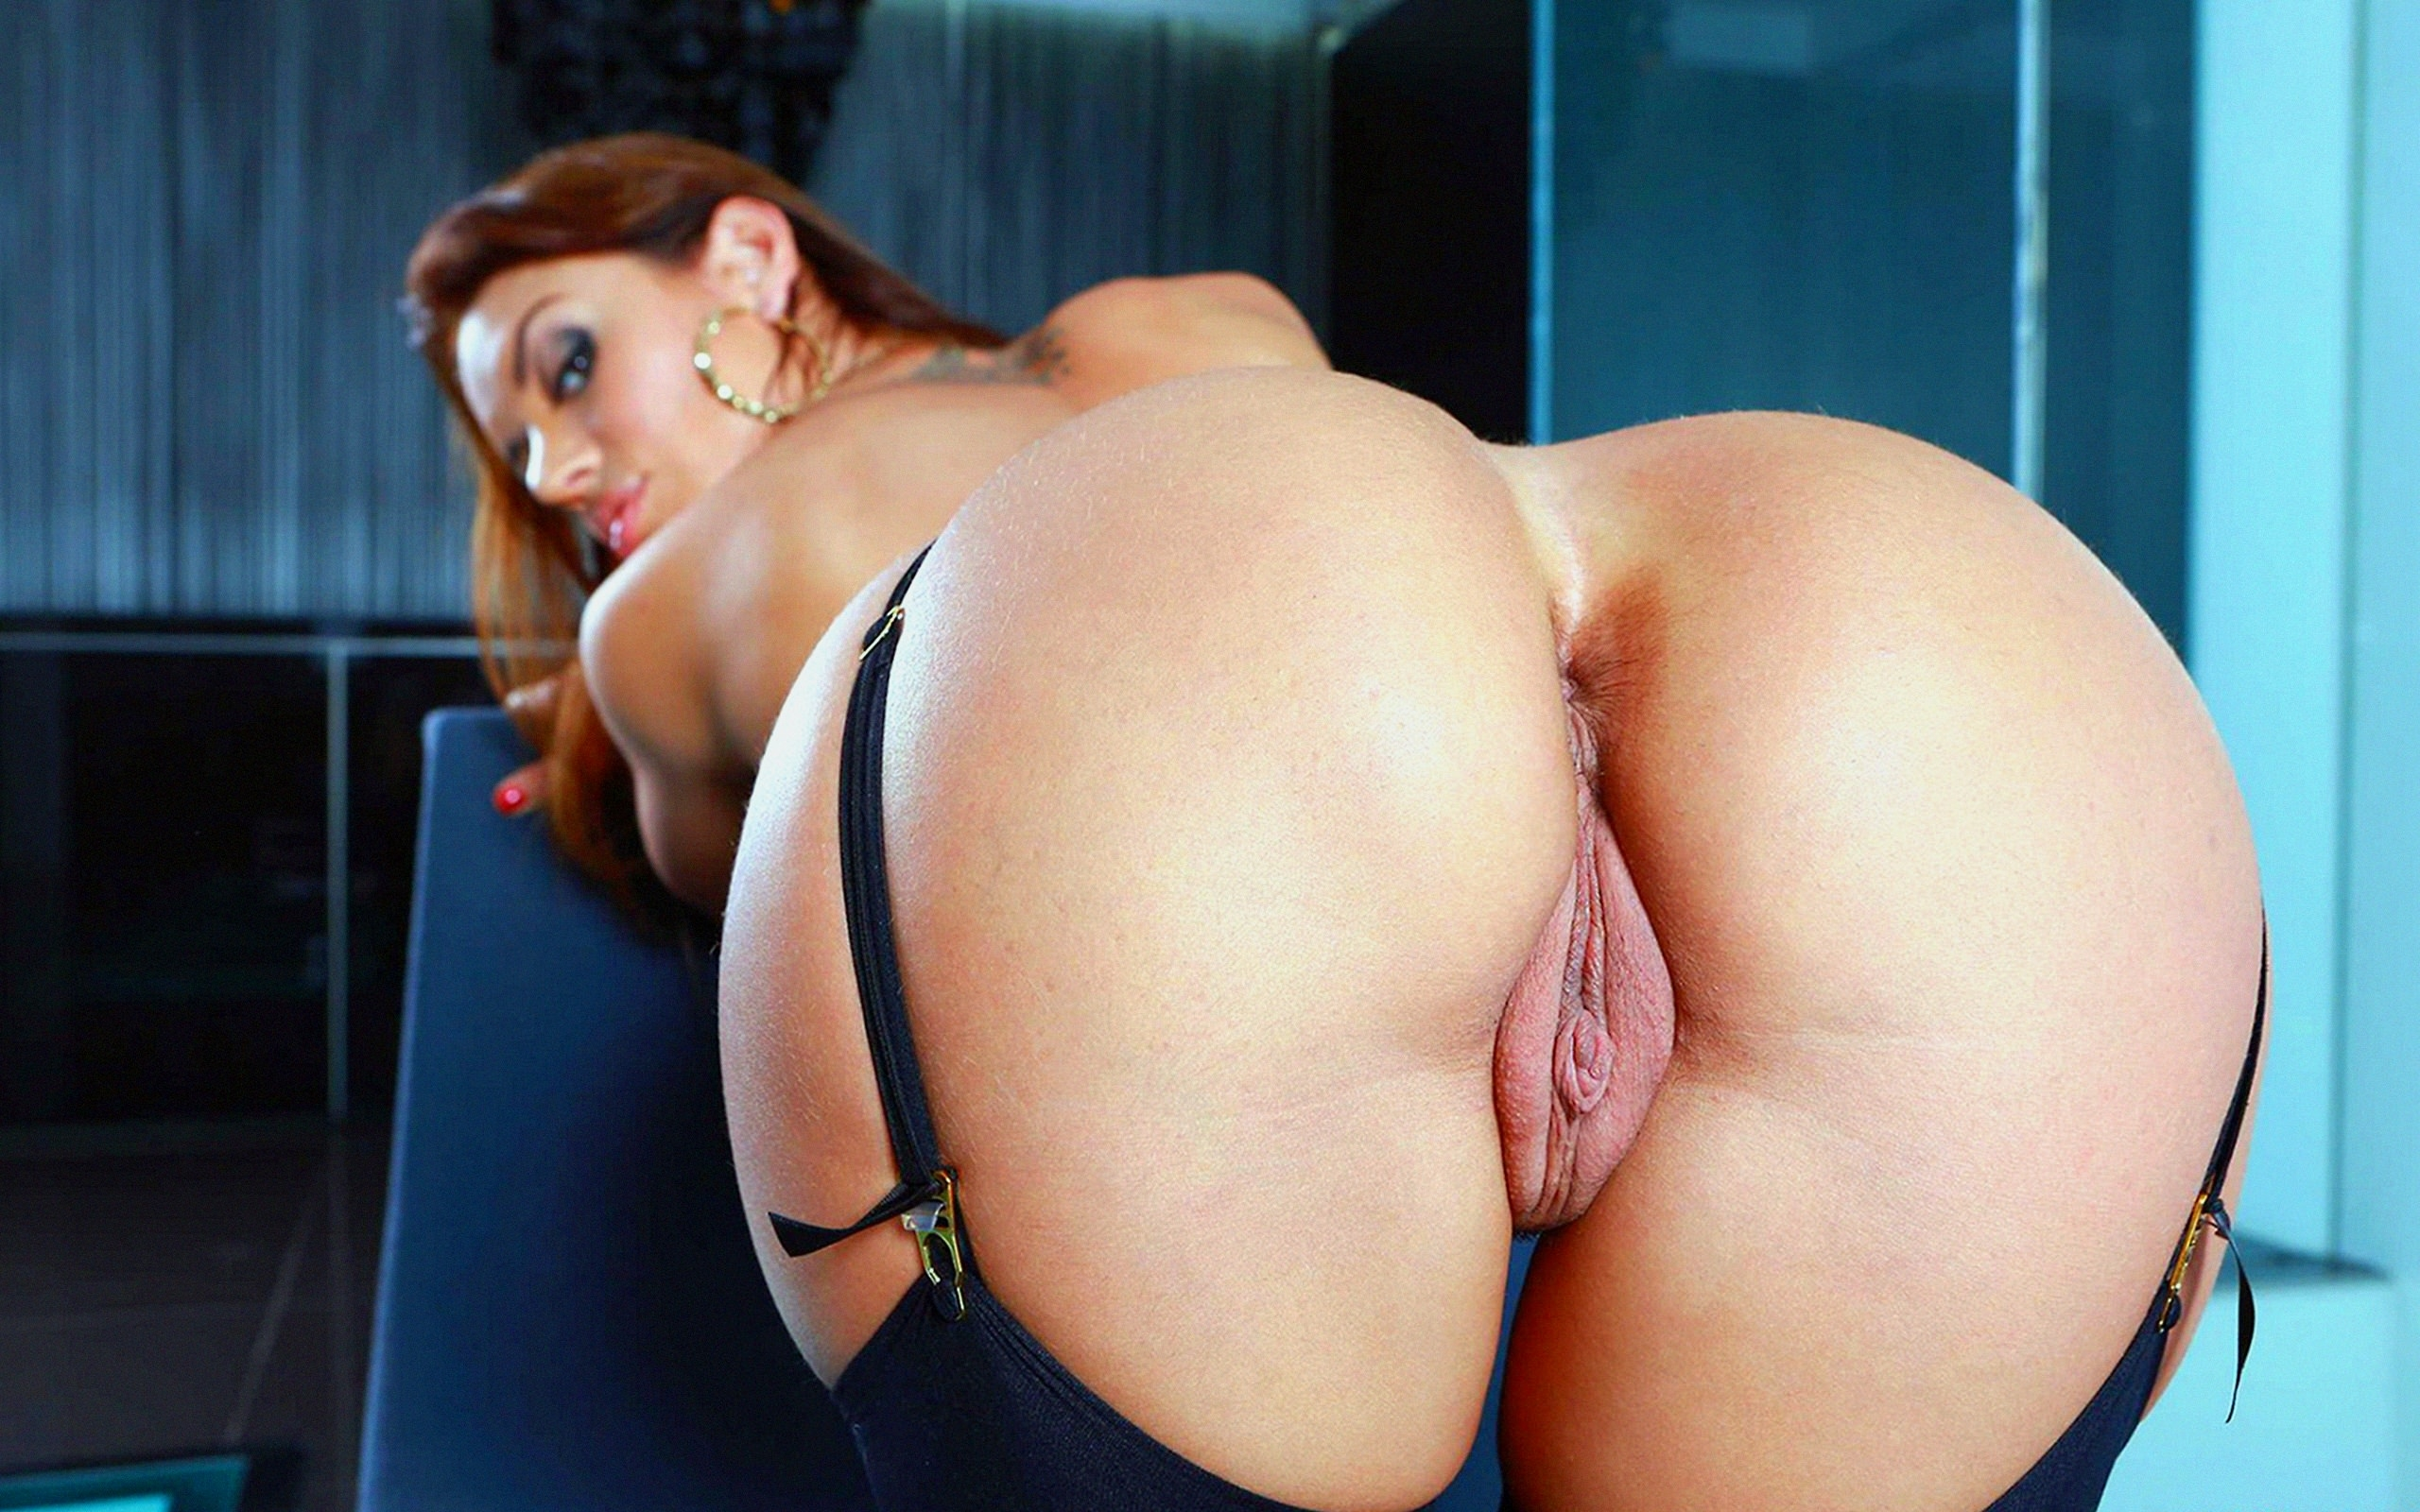 Hot Female Butt Porn